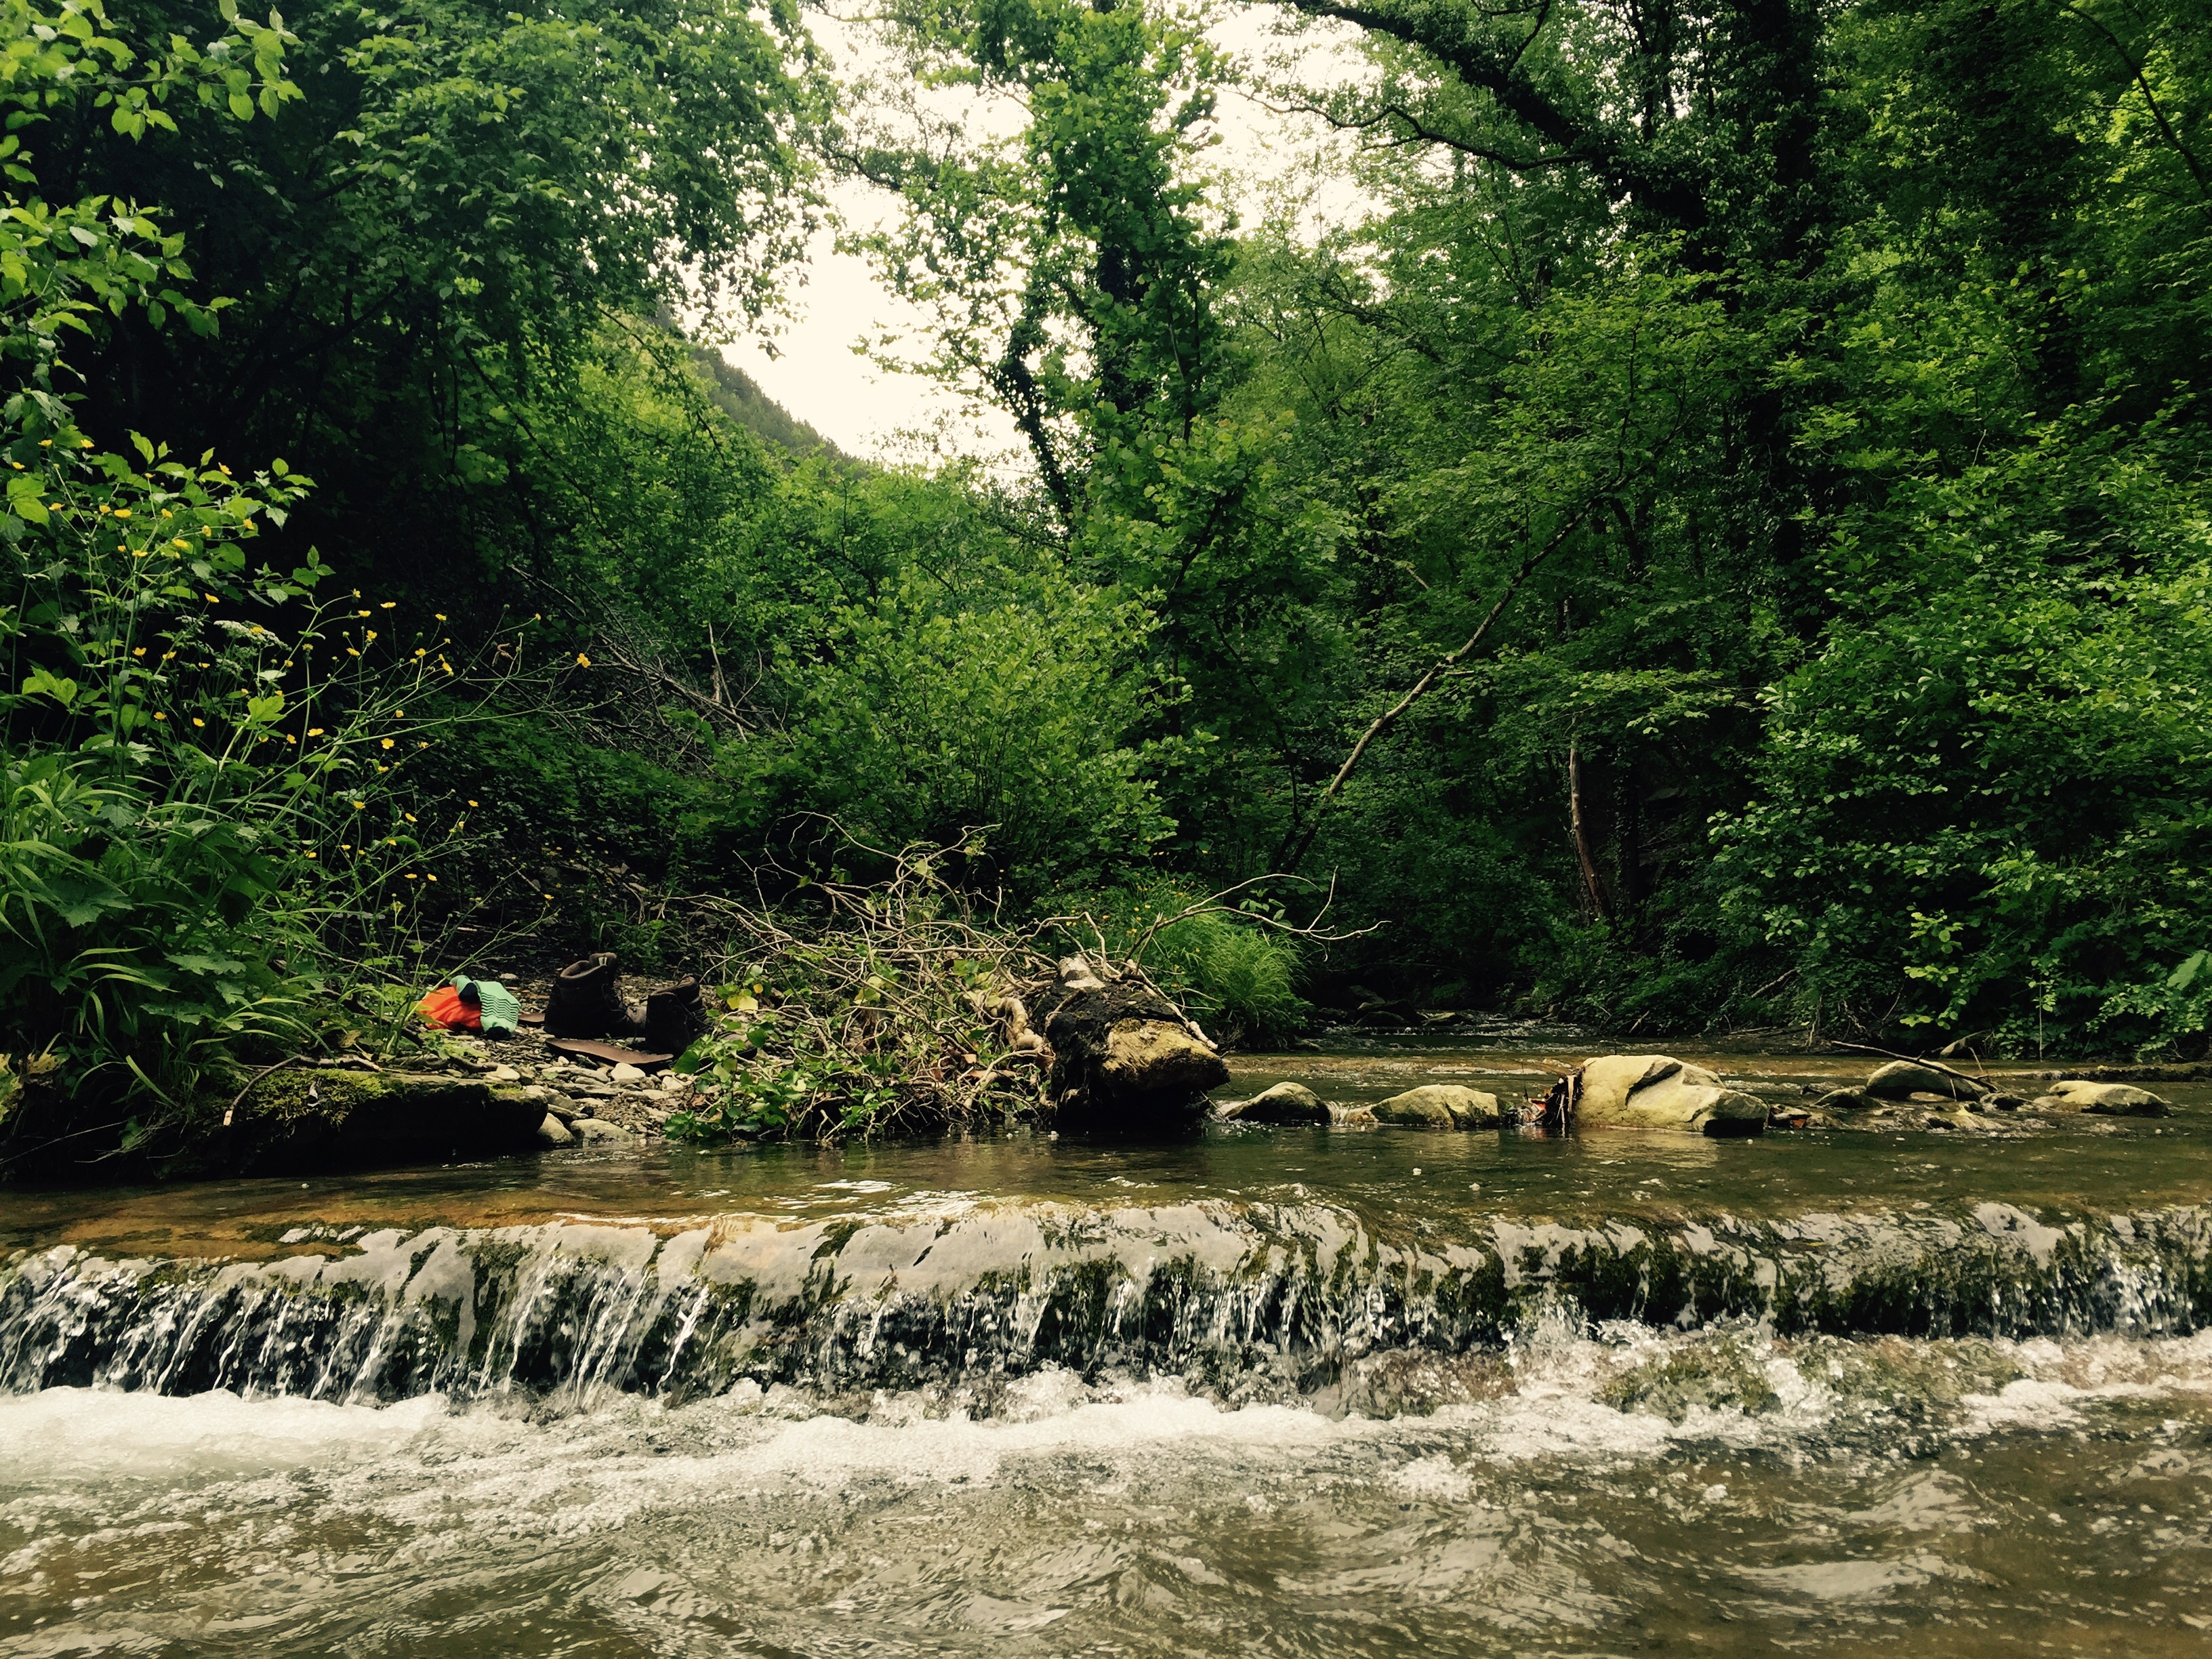 Cooling off in mountain river